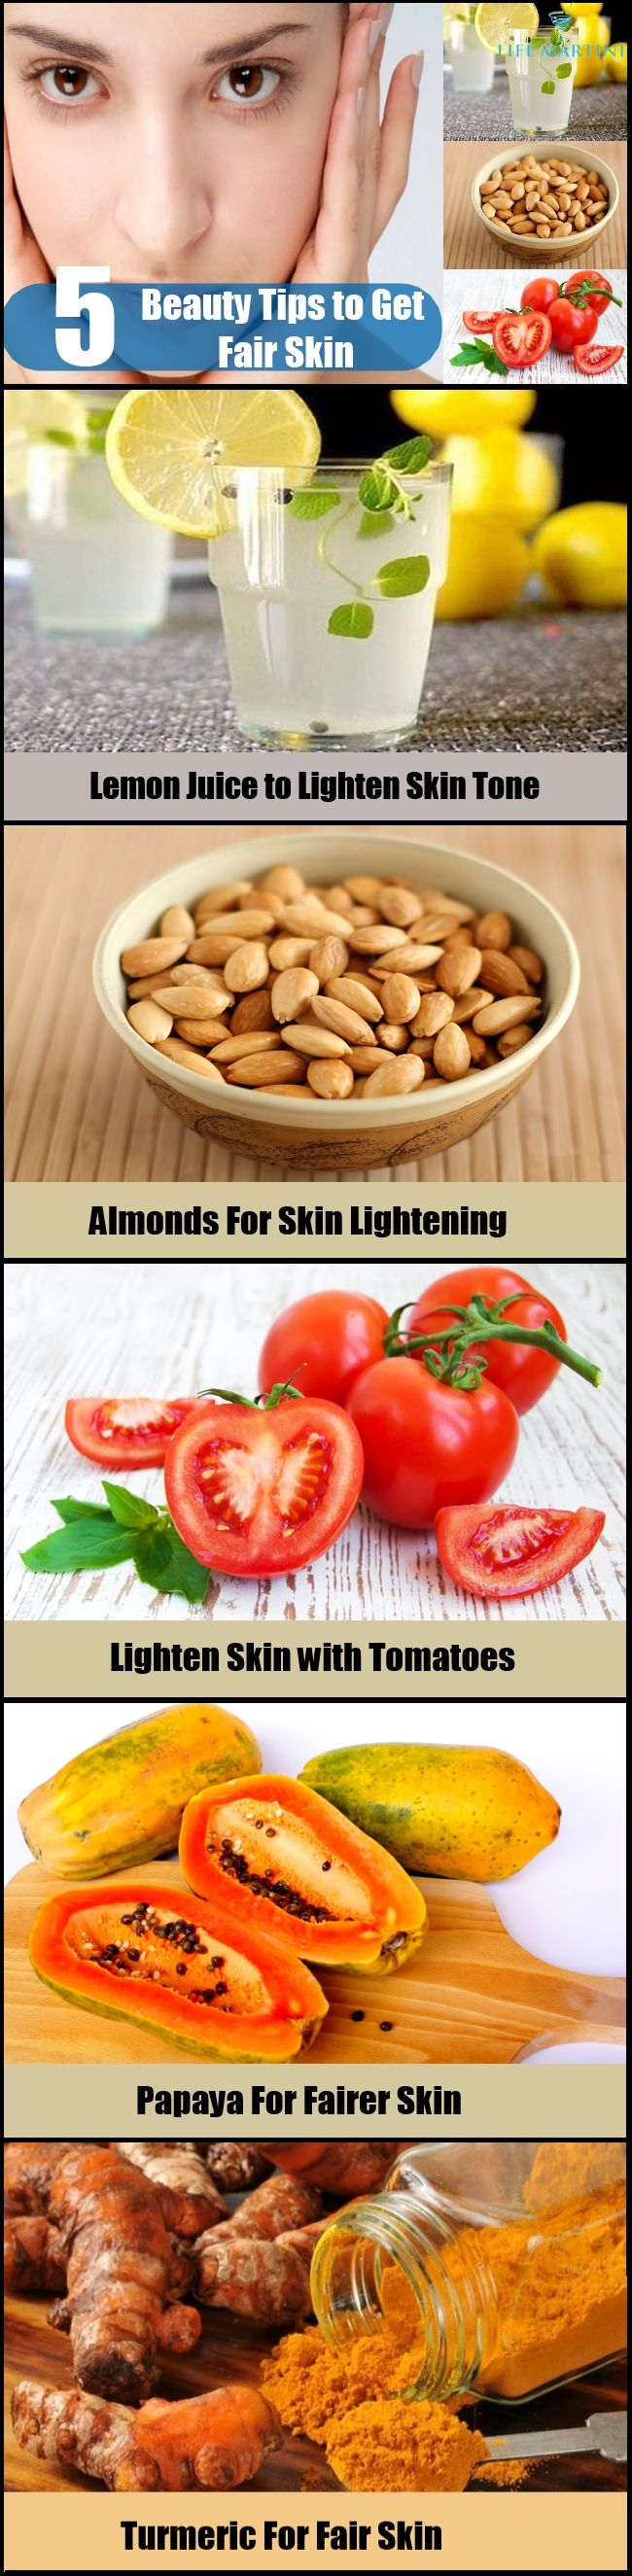 food for glowing skin and fair skin - Google Search